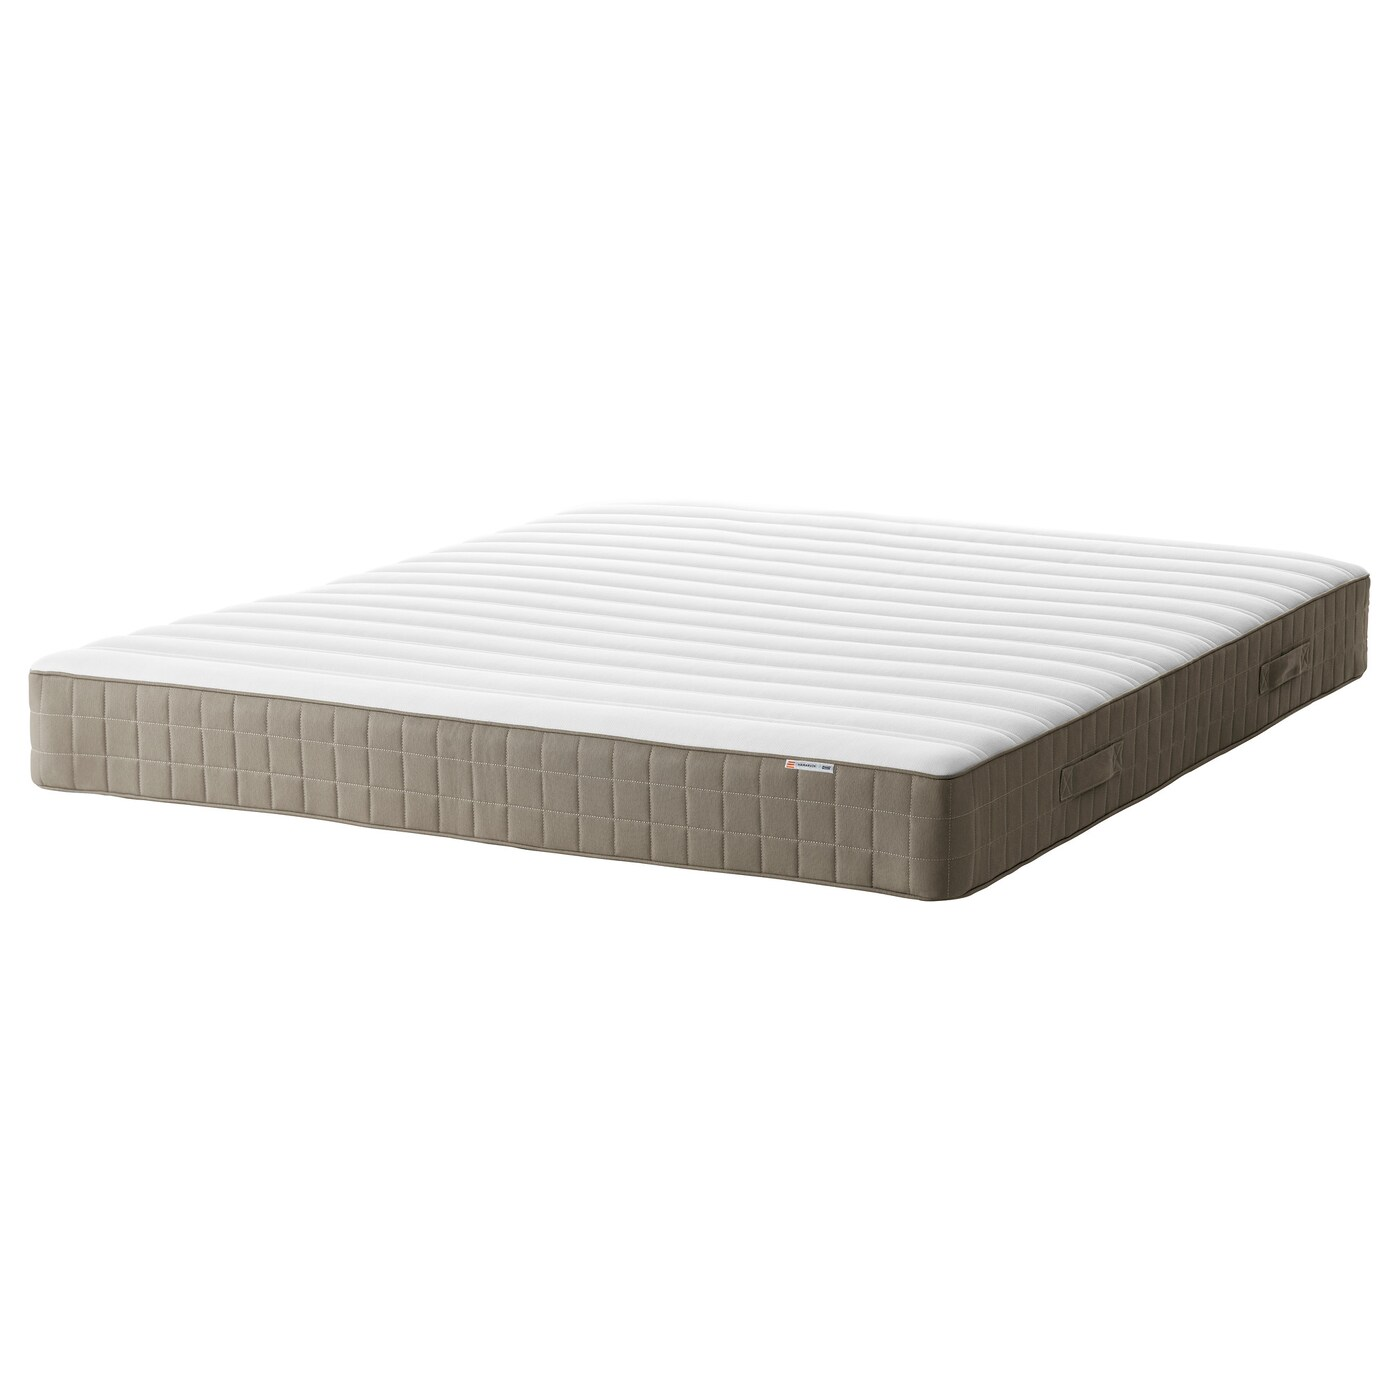 Ikea Mattress Hamarvik Sprung Mattress Firm Dark Beige Standard King Ikea